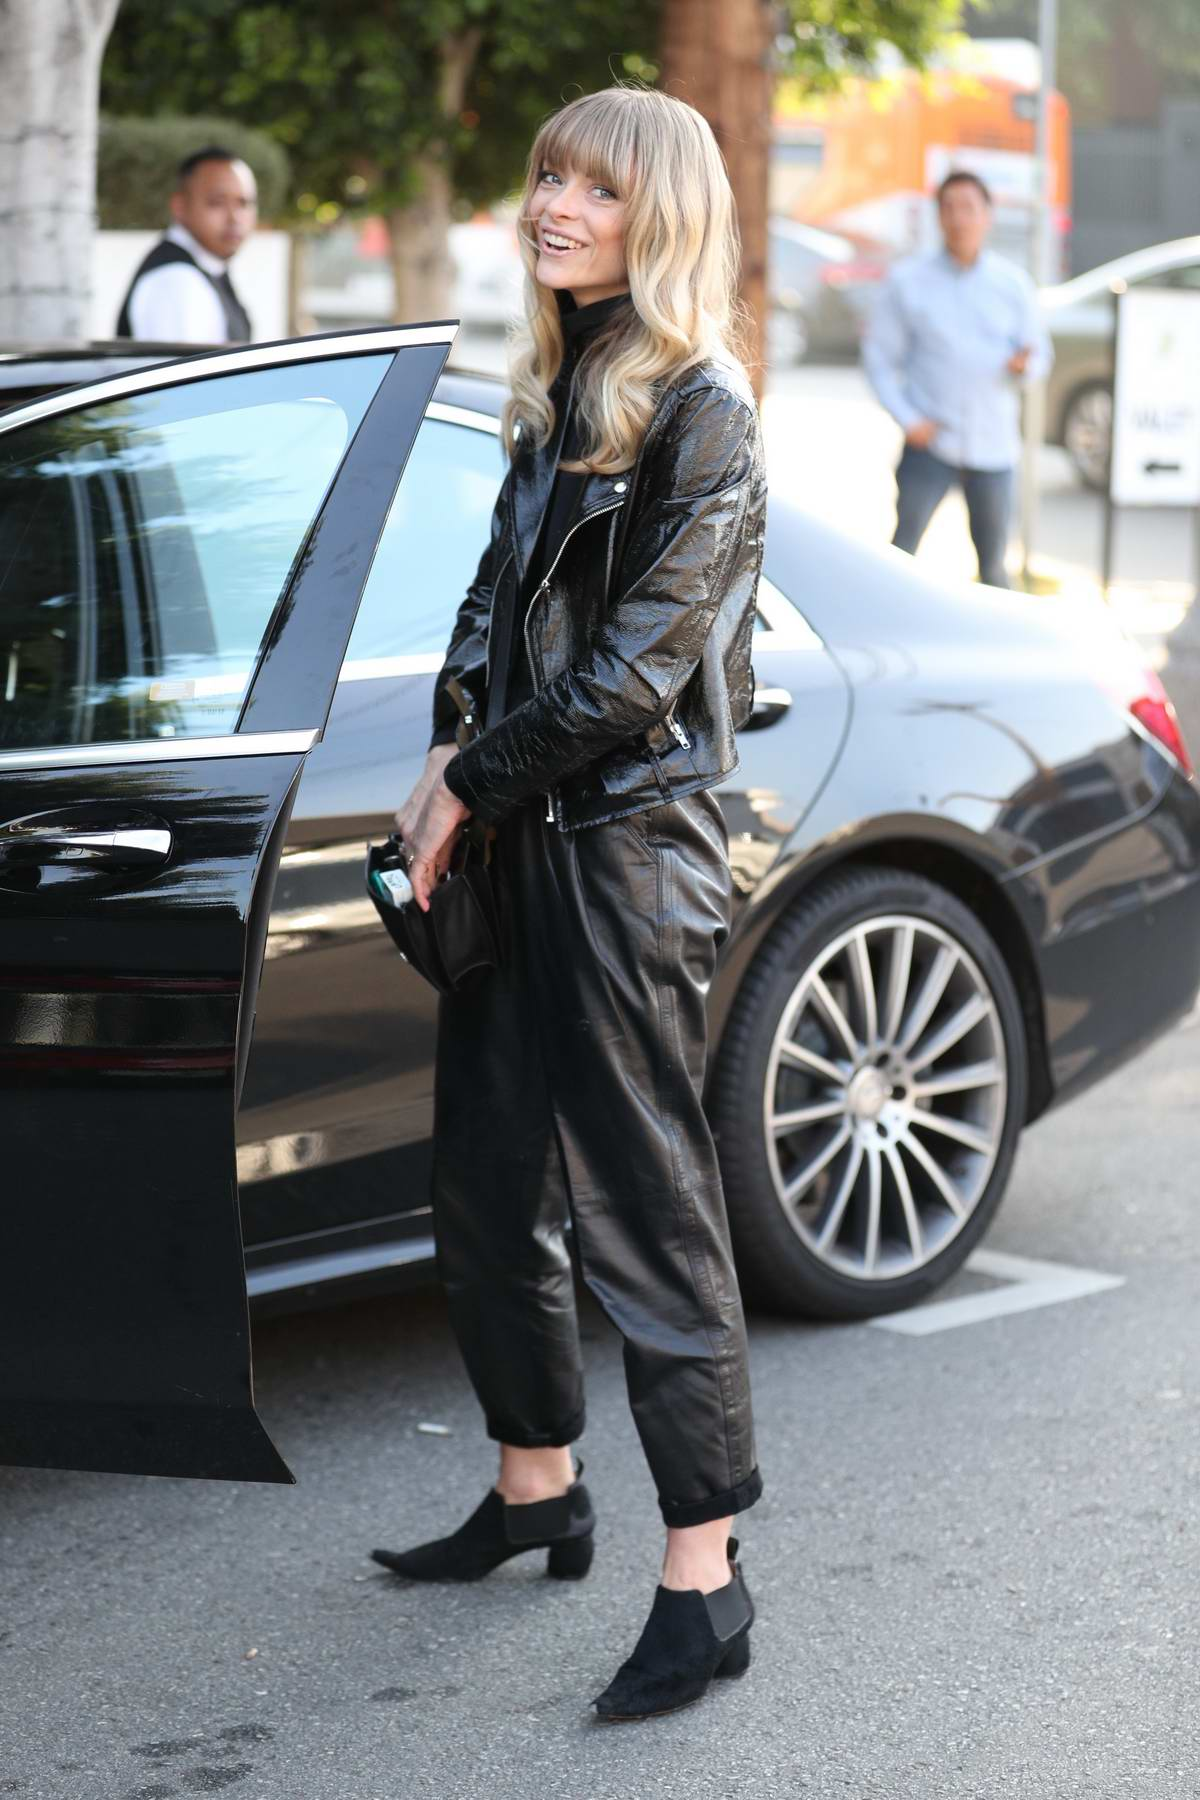 Jamie King steps out in an all black leather outfit at Fig & Olive Restaurant in West Hollywood, Los Angeles